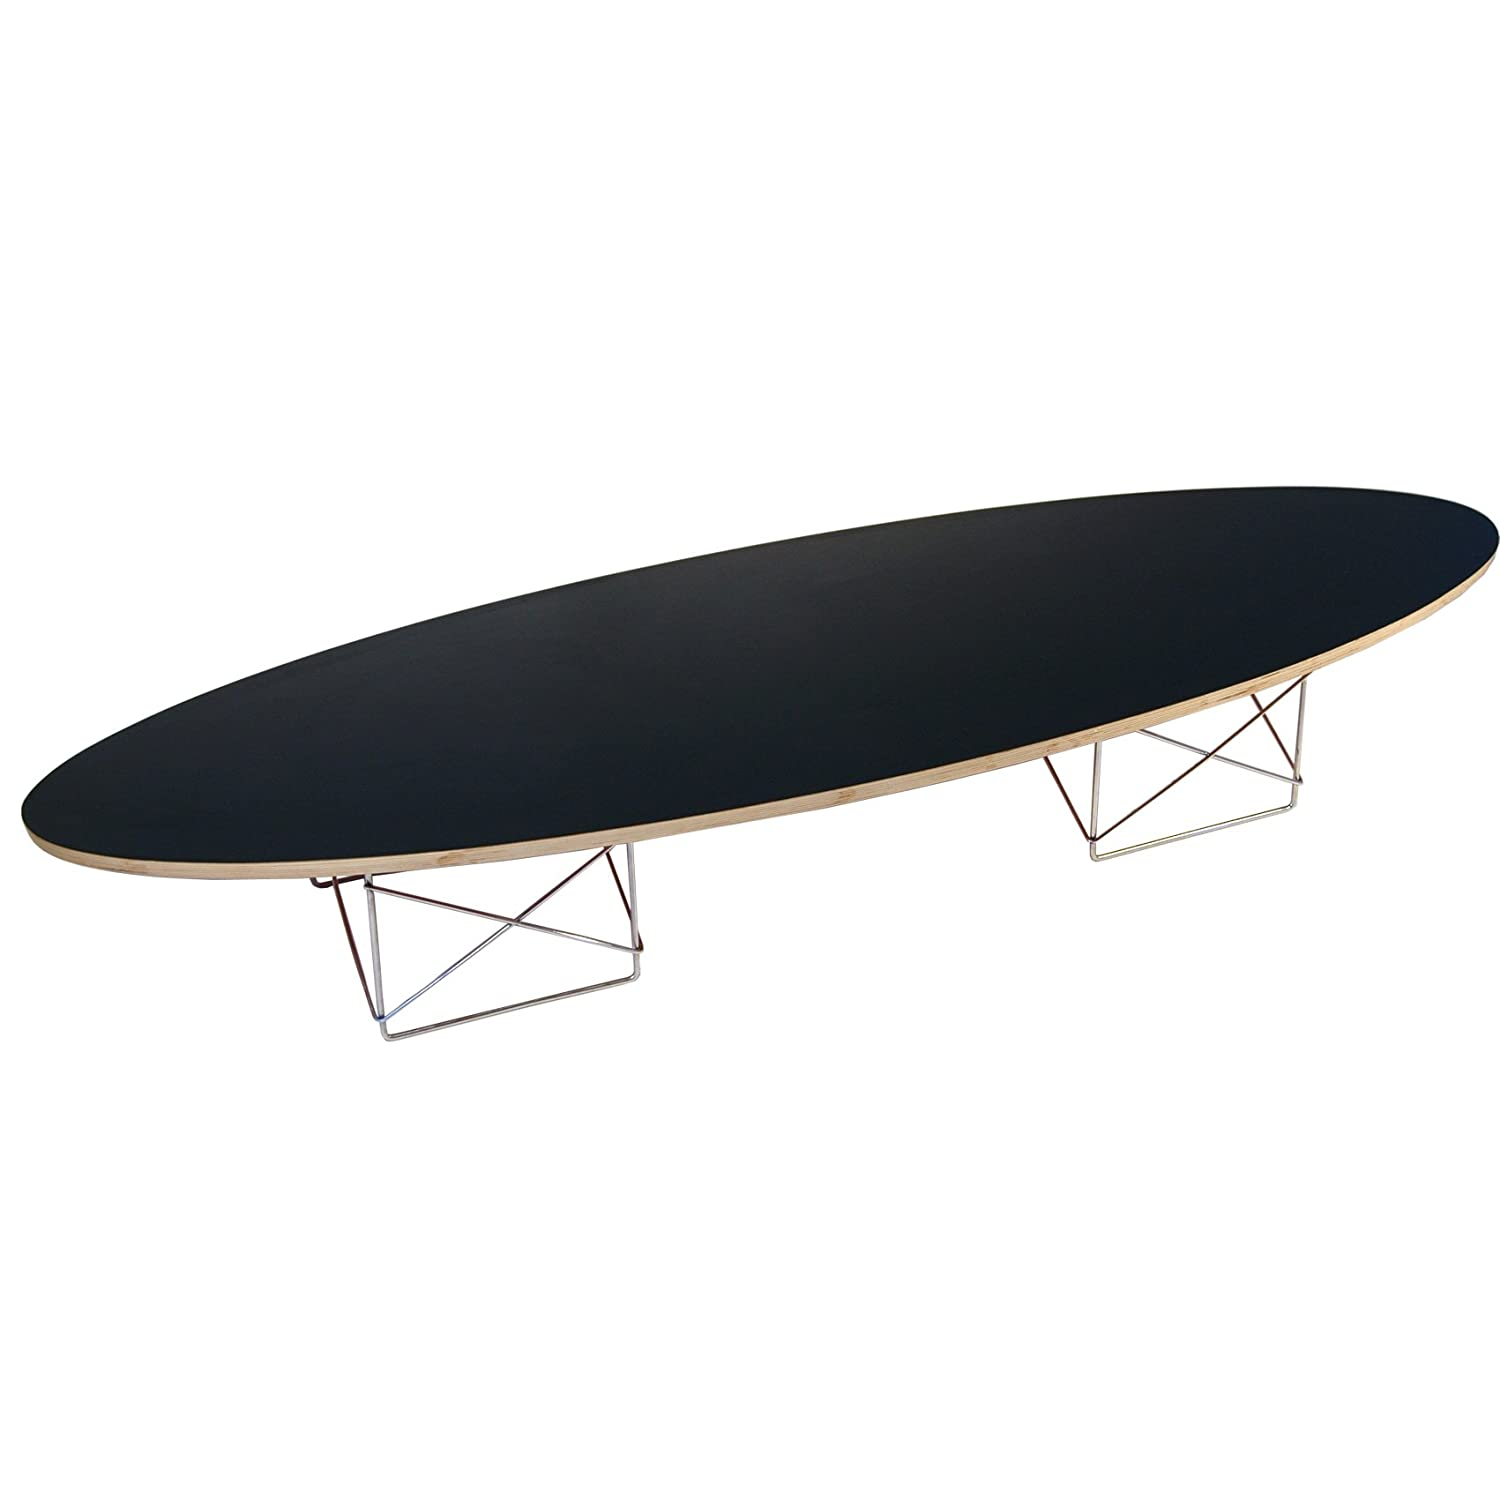 Eames Surfboard Coffee Table.Eames Elliptical Surfboard Coffee Table Black